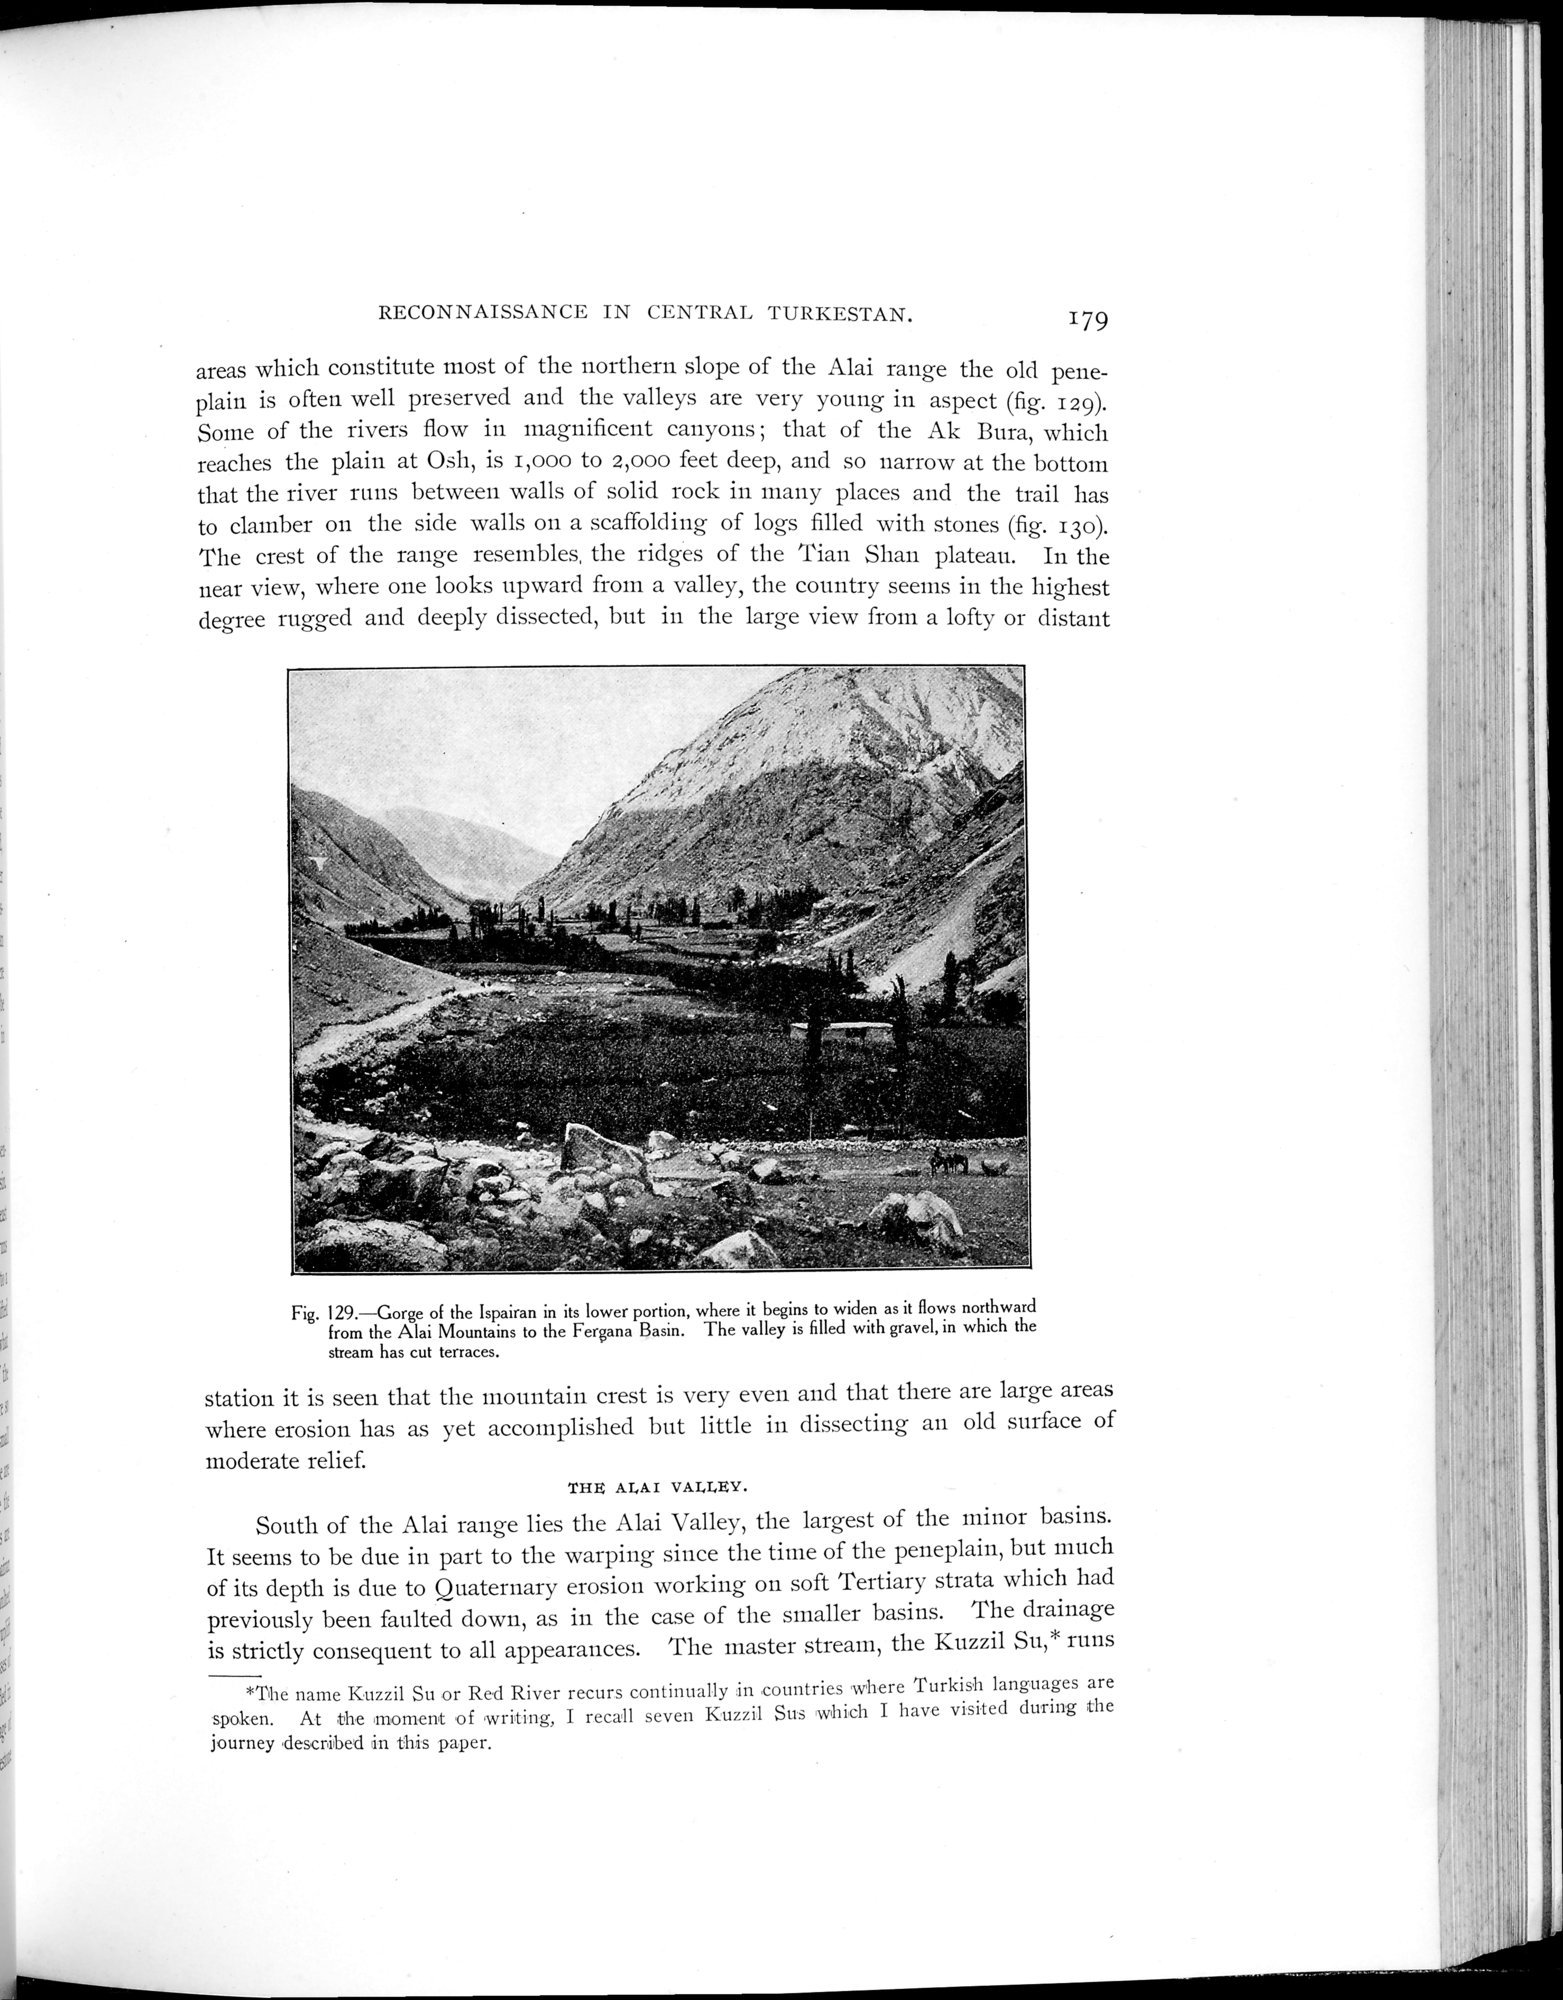 Explorations in Turkestan 1903 : vol.1 / Page 209 (Grayscale High Resolution Image)